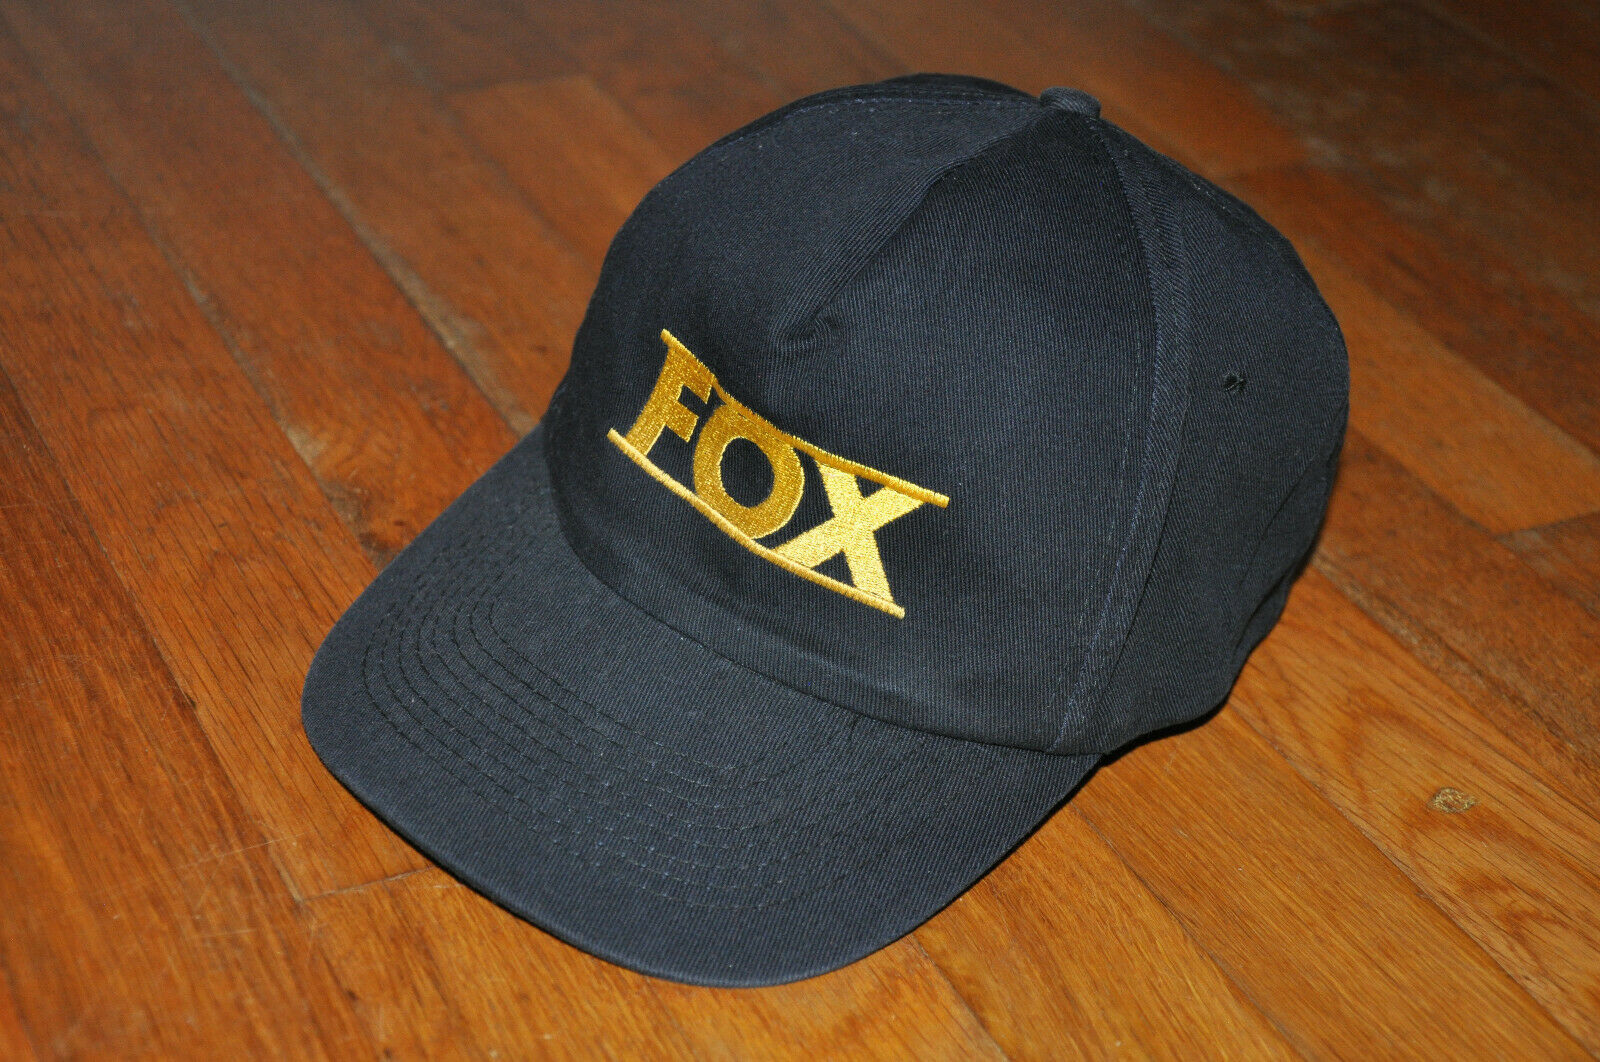 VTG 20th Century FOX Embroidered Snapback Trucker Hat  Vintage 80s 90s